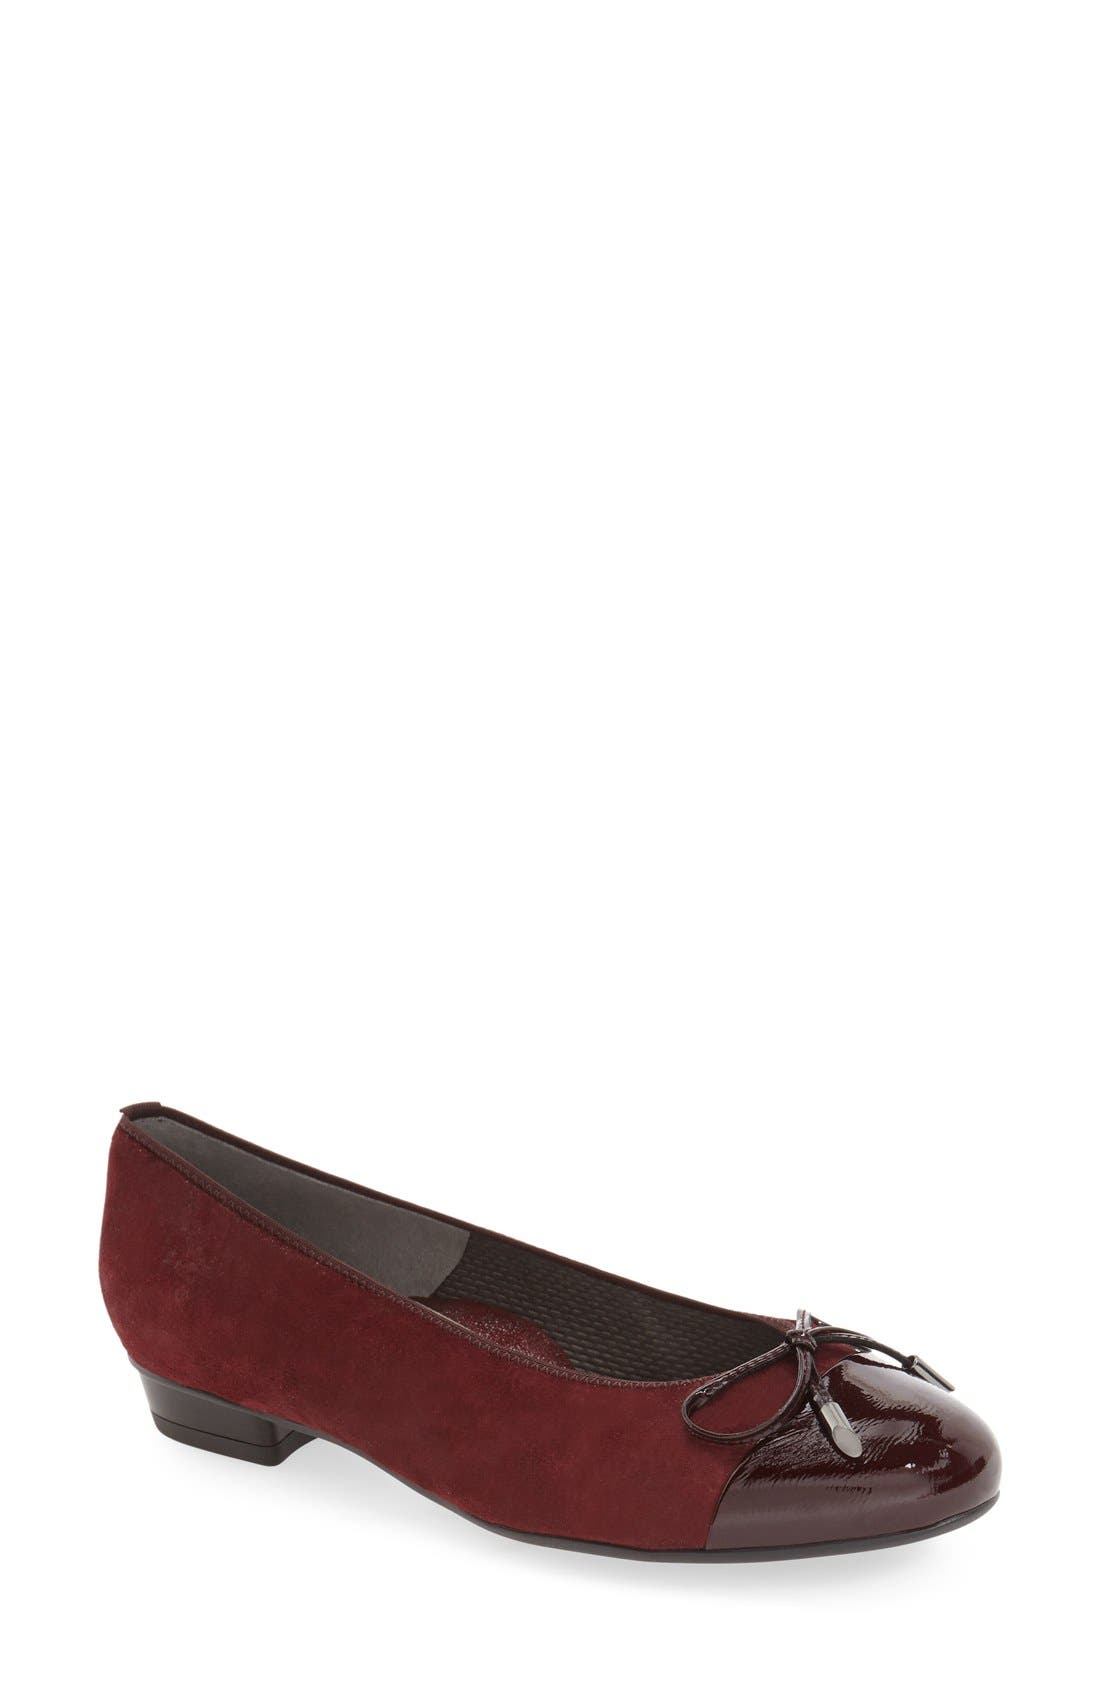 'Betty' Cap Toe Flat,                         Main,                         color, Burgundy Patent Leather